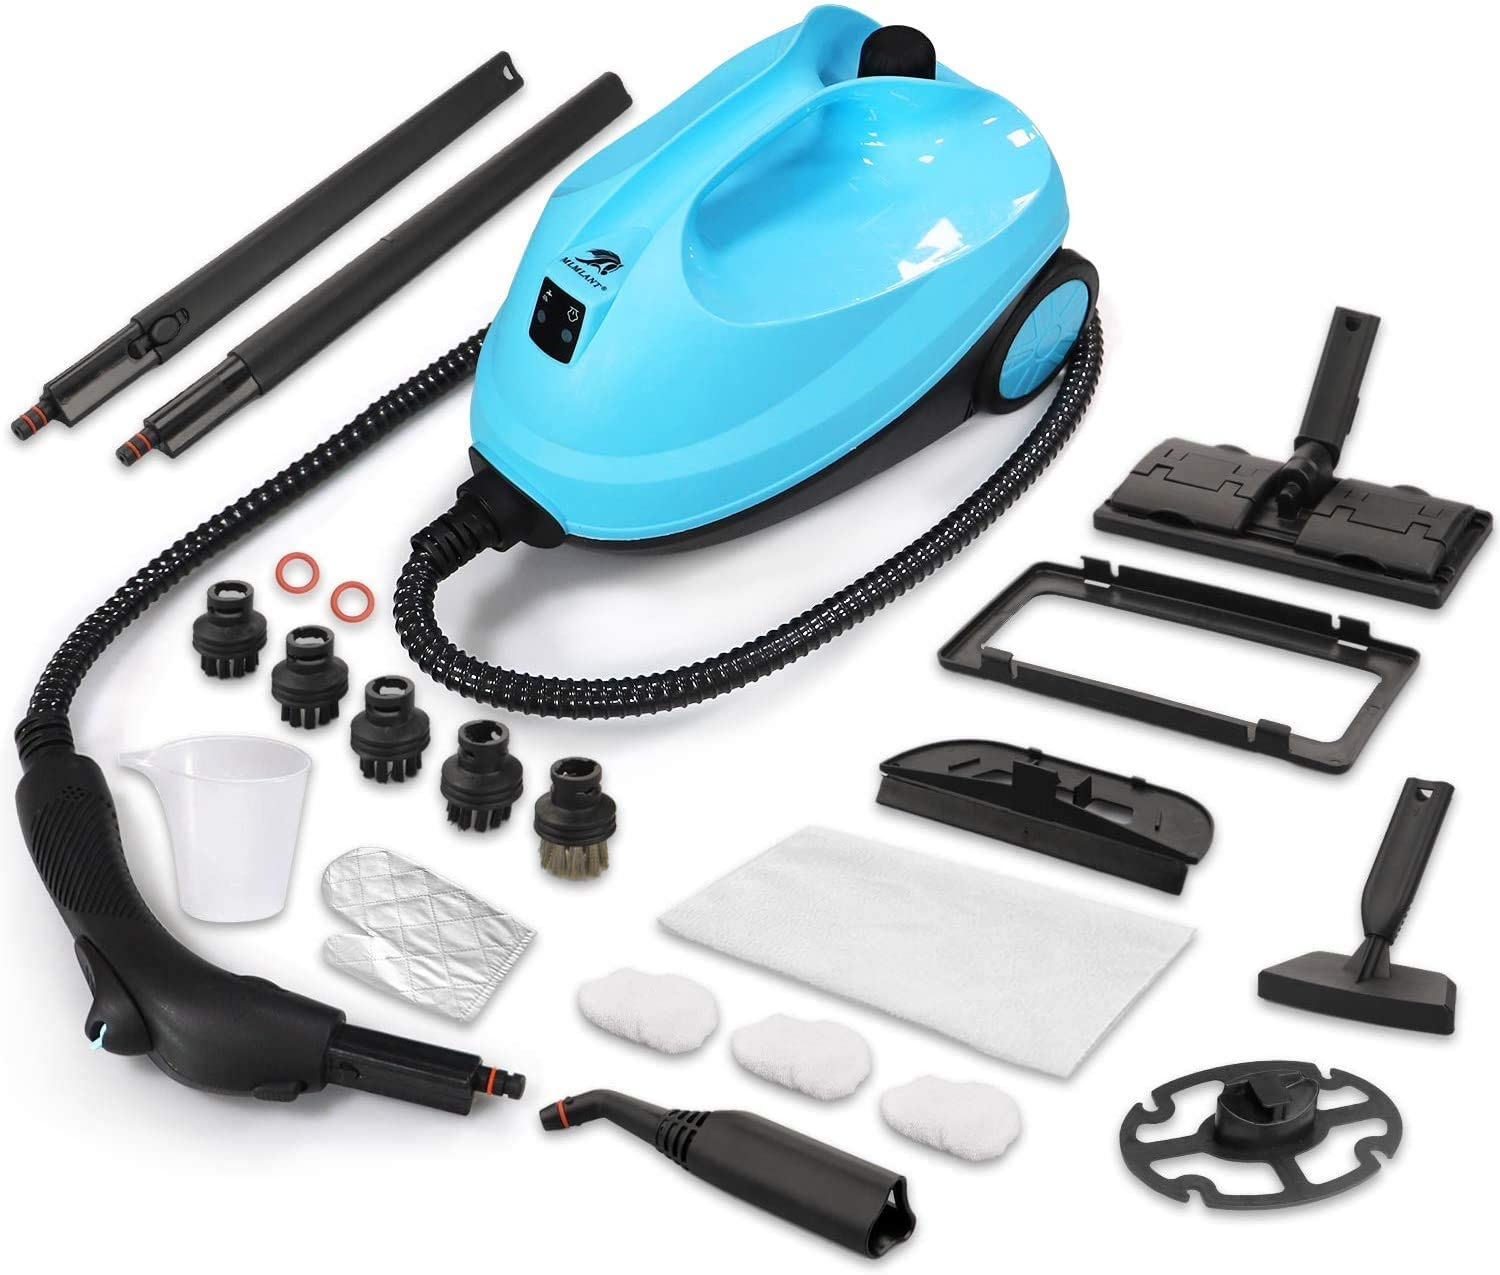 OFFer MLMLANT Multipurpose Steam Cleaner with Spring new work one after another 21-Piece St Accessories